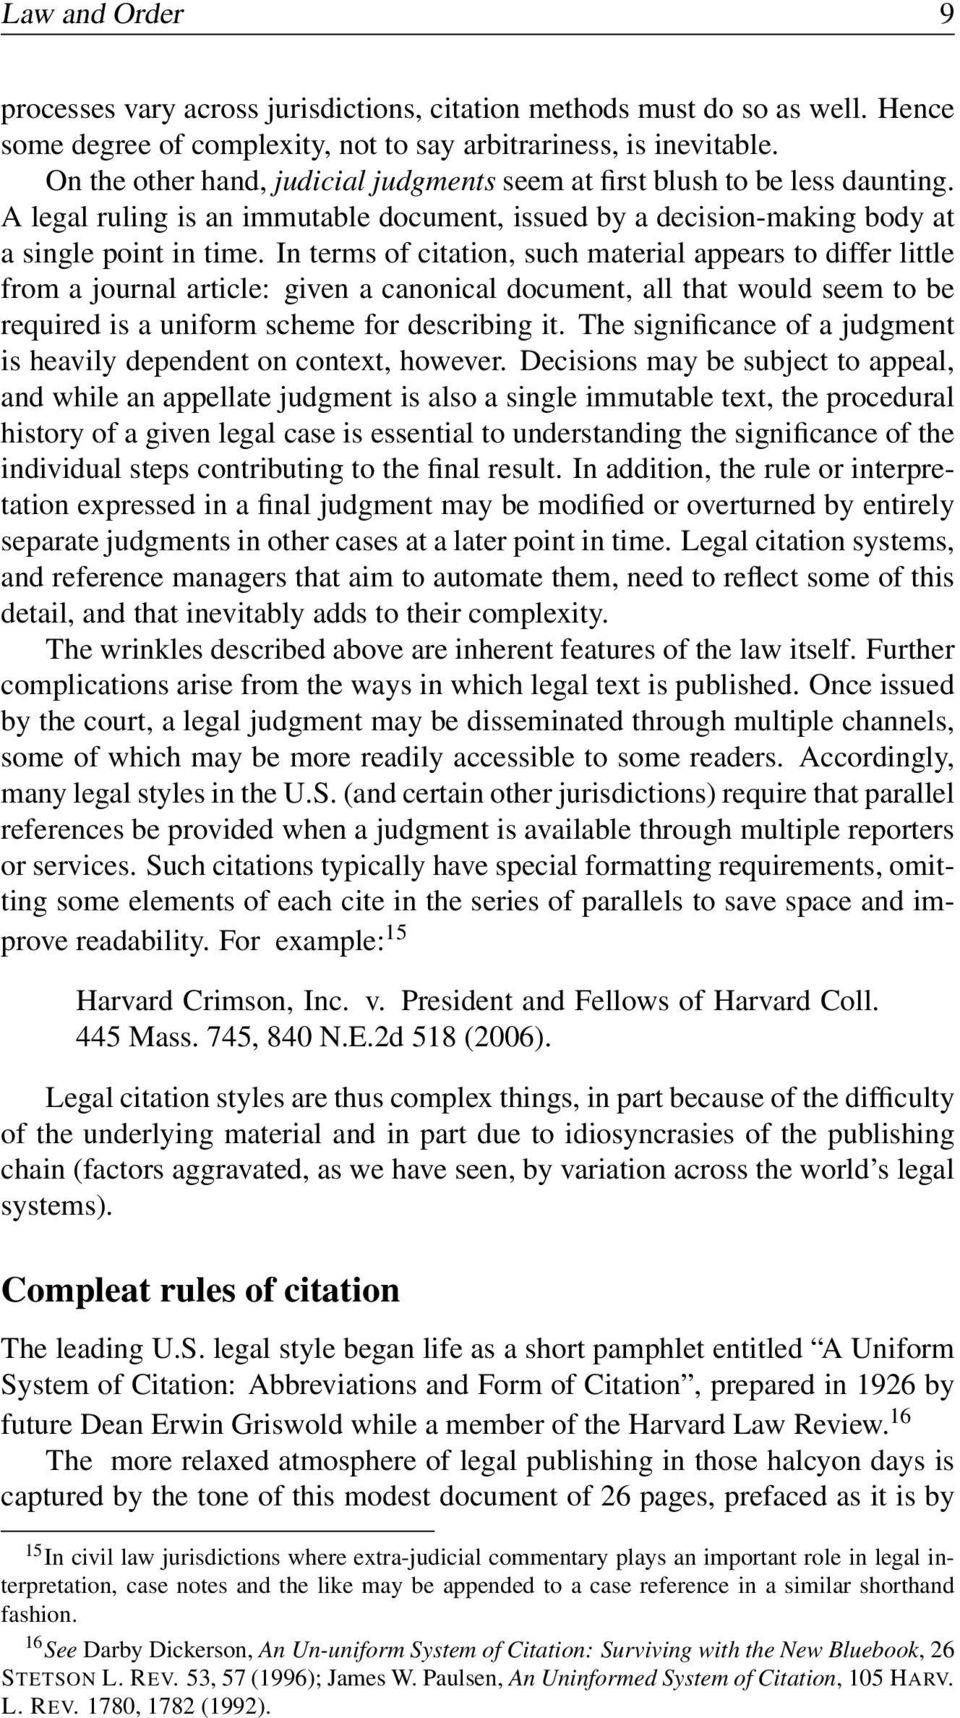 In terms of citation, such material appears to differ little from a journal article: given a canonical document, all that would seem to be required is a uniform scheme for describing it.